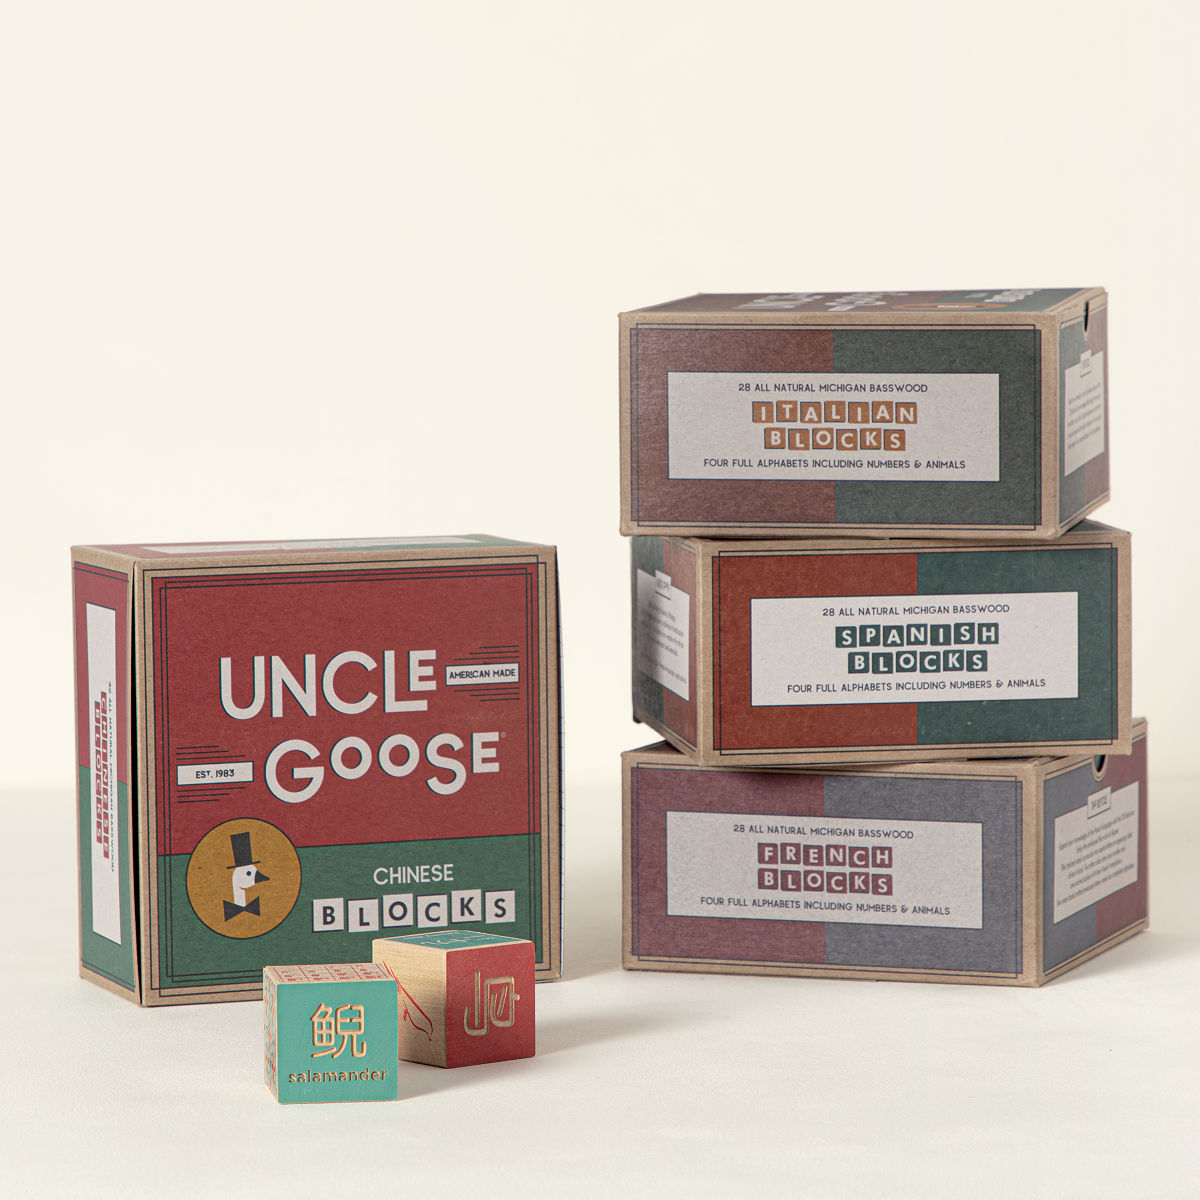 Periodic table building blocks toy blocks element blocks foreign language blocks gamestrikefo Gallery